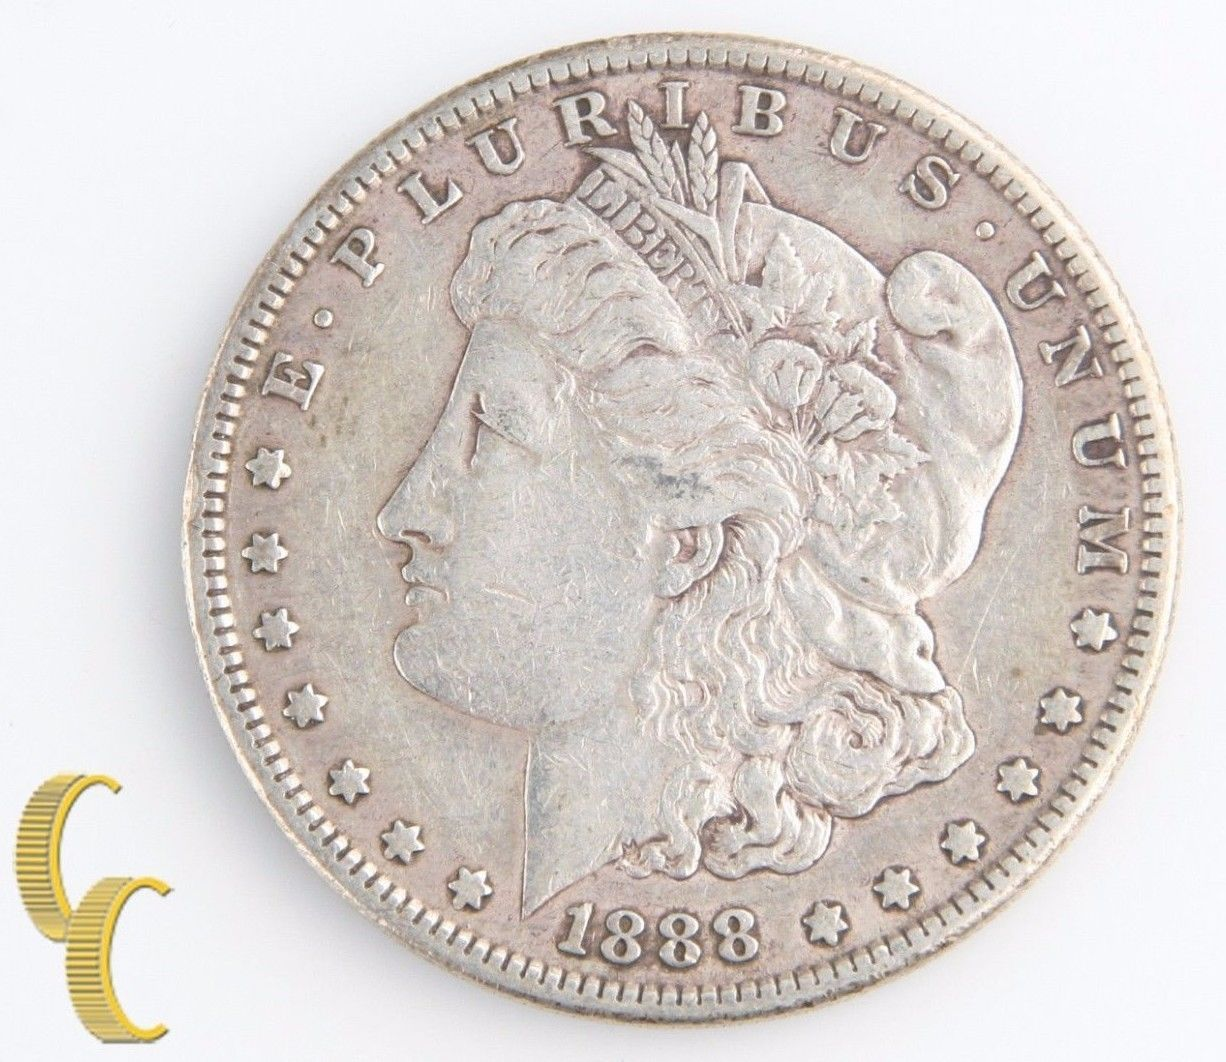 1888-S Morgan Silver Dollar (Very Fine+, VF+) San Francisco Lower Mintage $1 One